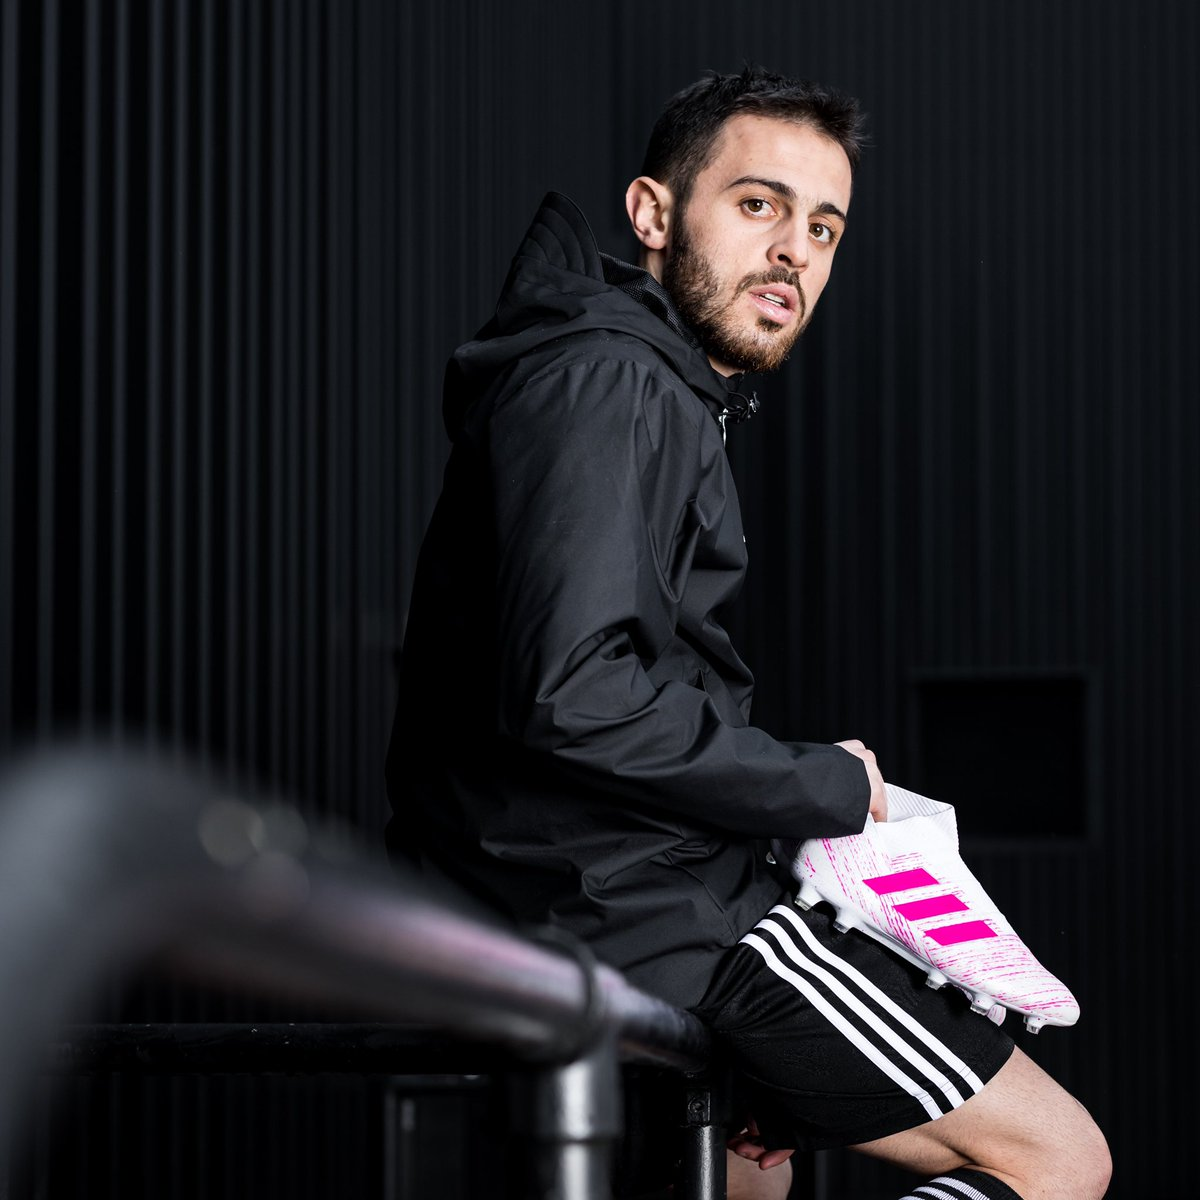 Creator only 👟 #Nemeziz #DareToCreate #createdwithadidas @adidasfootball https://t.co/gYzBewl4C6